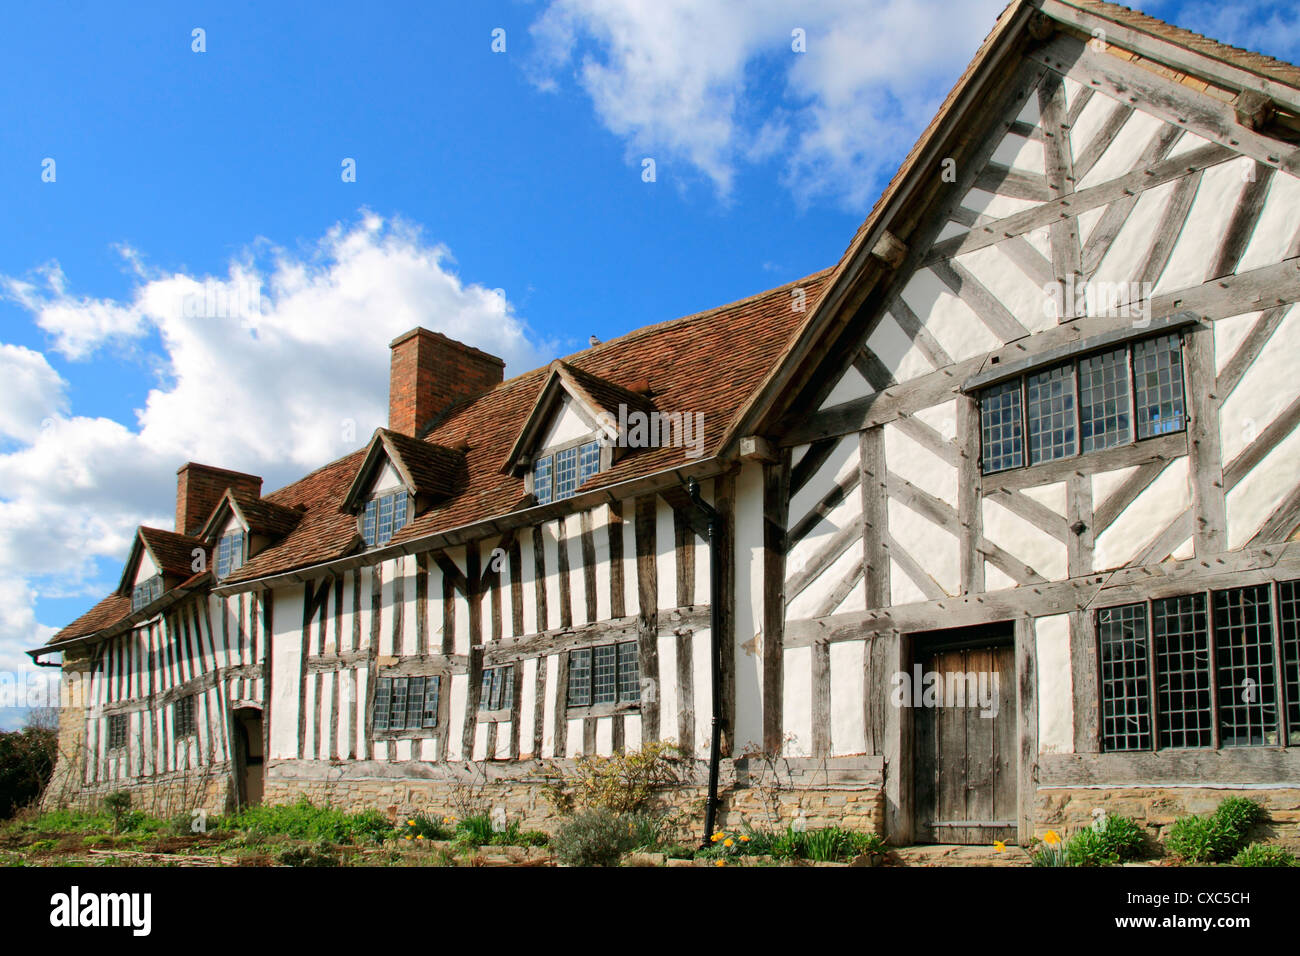 Mary Arden's House, Wilmcote, Stratford-upon-Avon, Warwickshire, England, United Kingdom, Europe - Stock Image